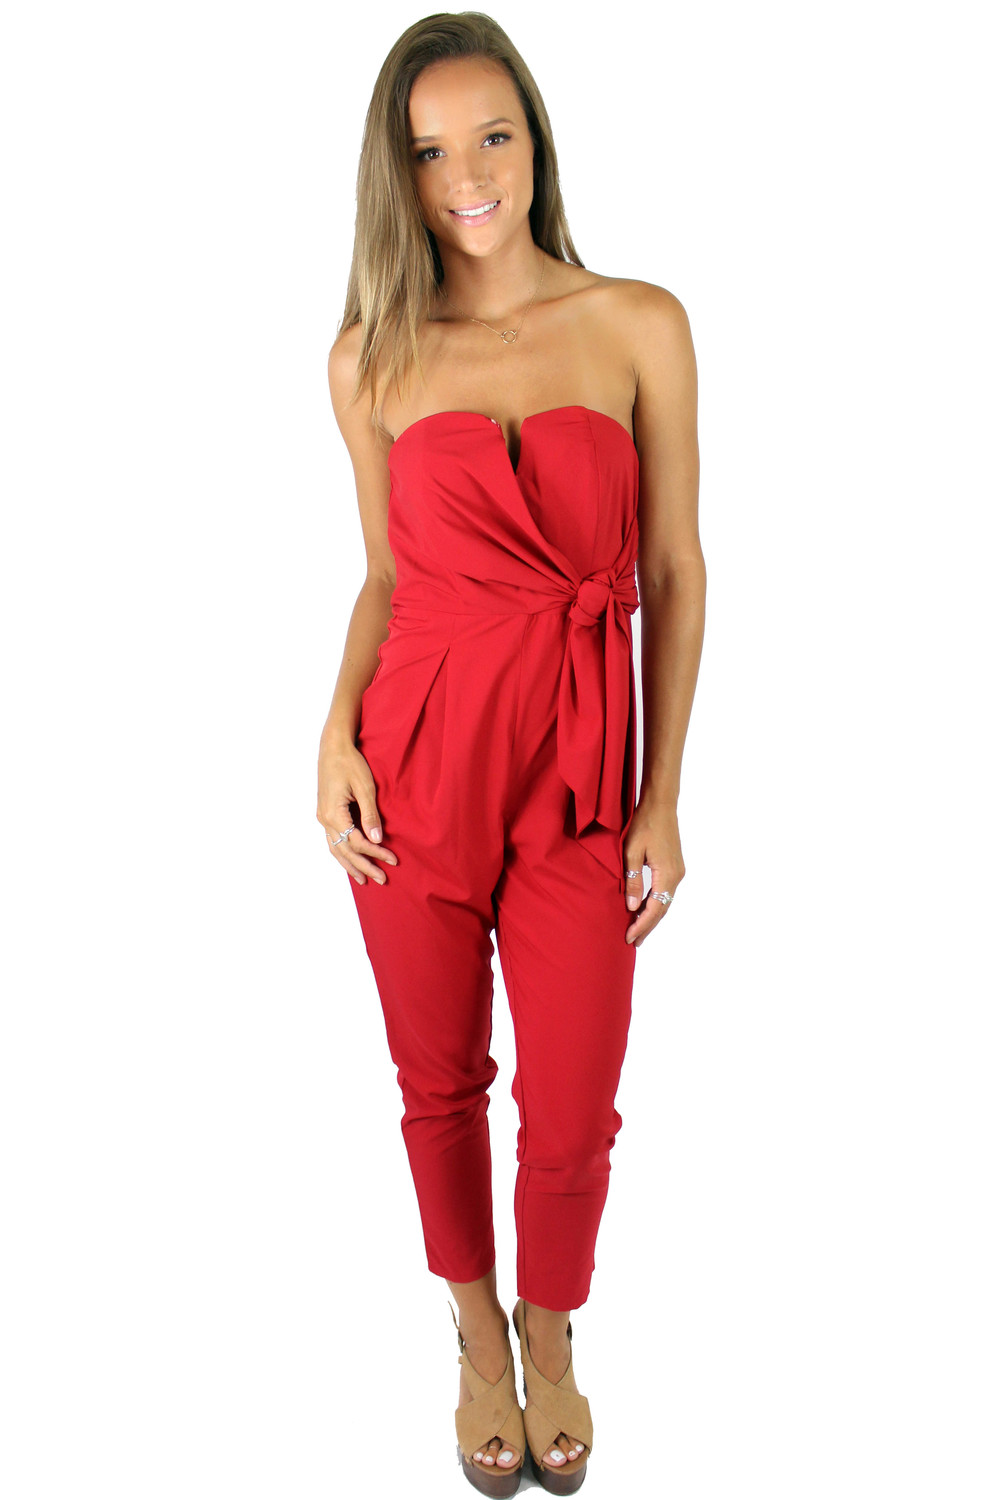 Helen Owen wearing our Venice Strapless Pantsuit in Red.